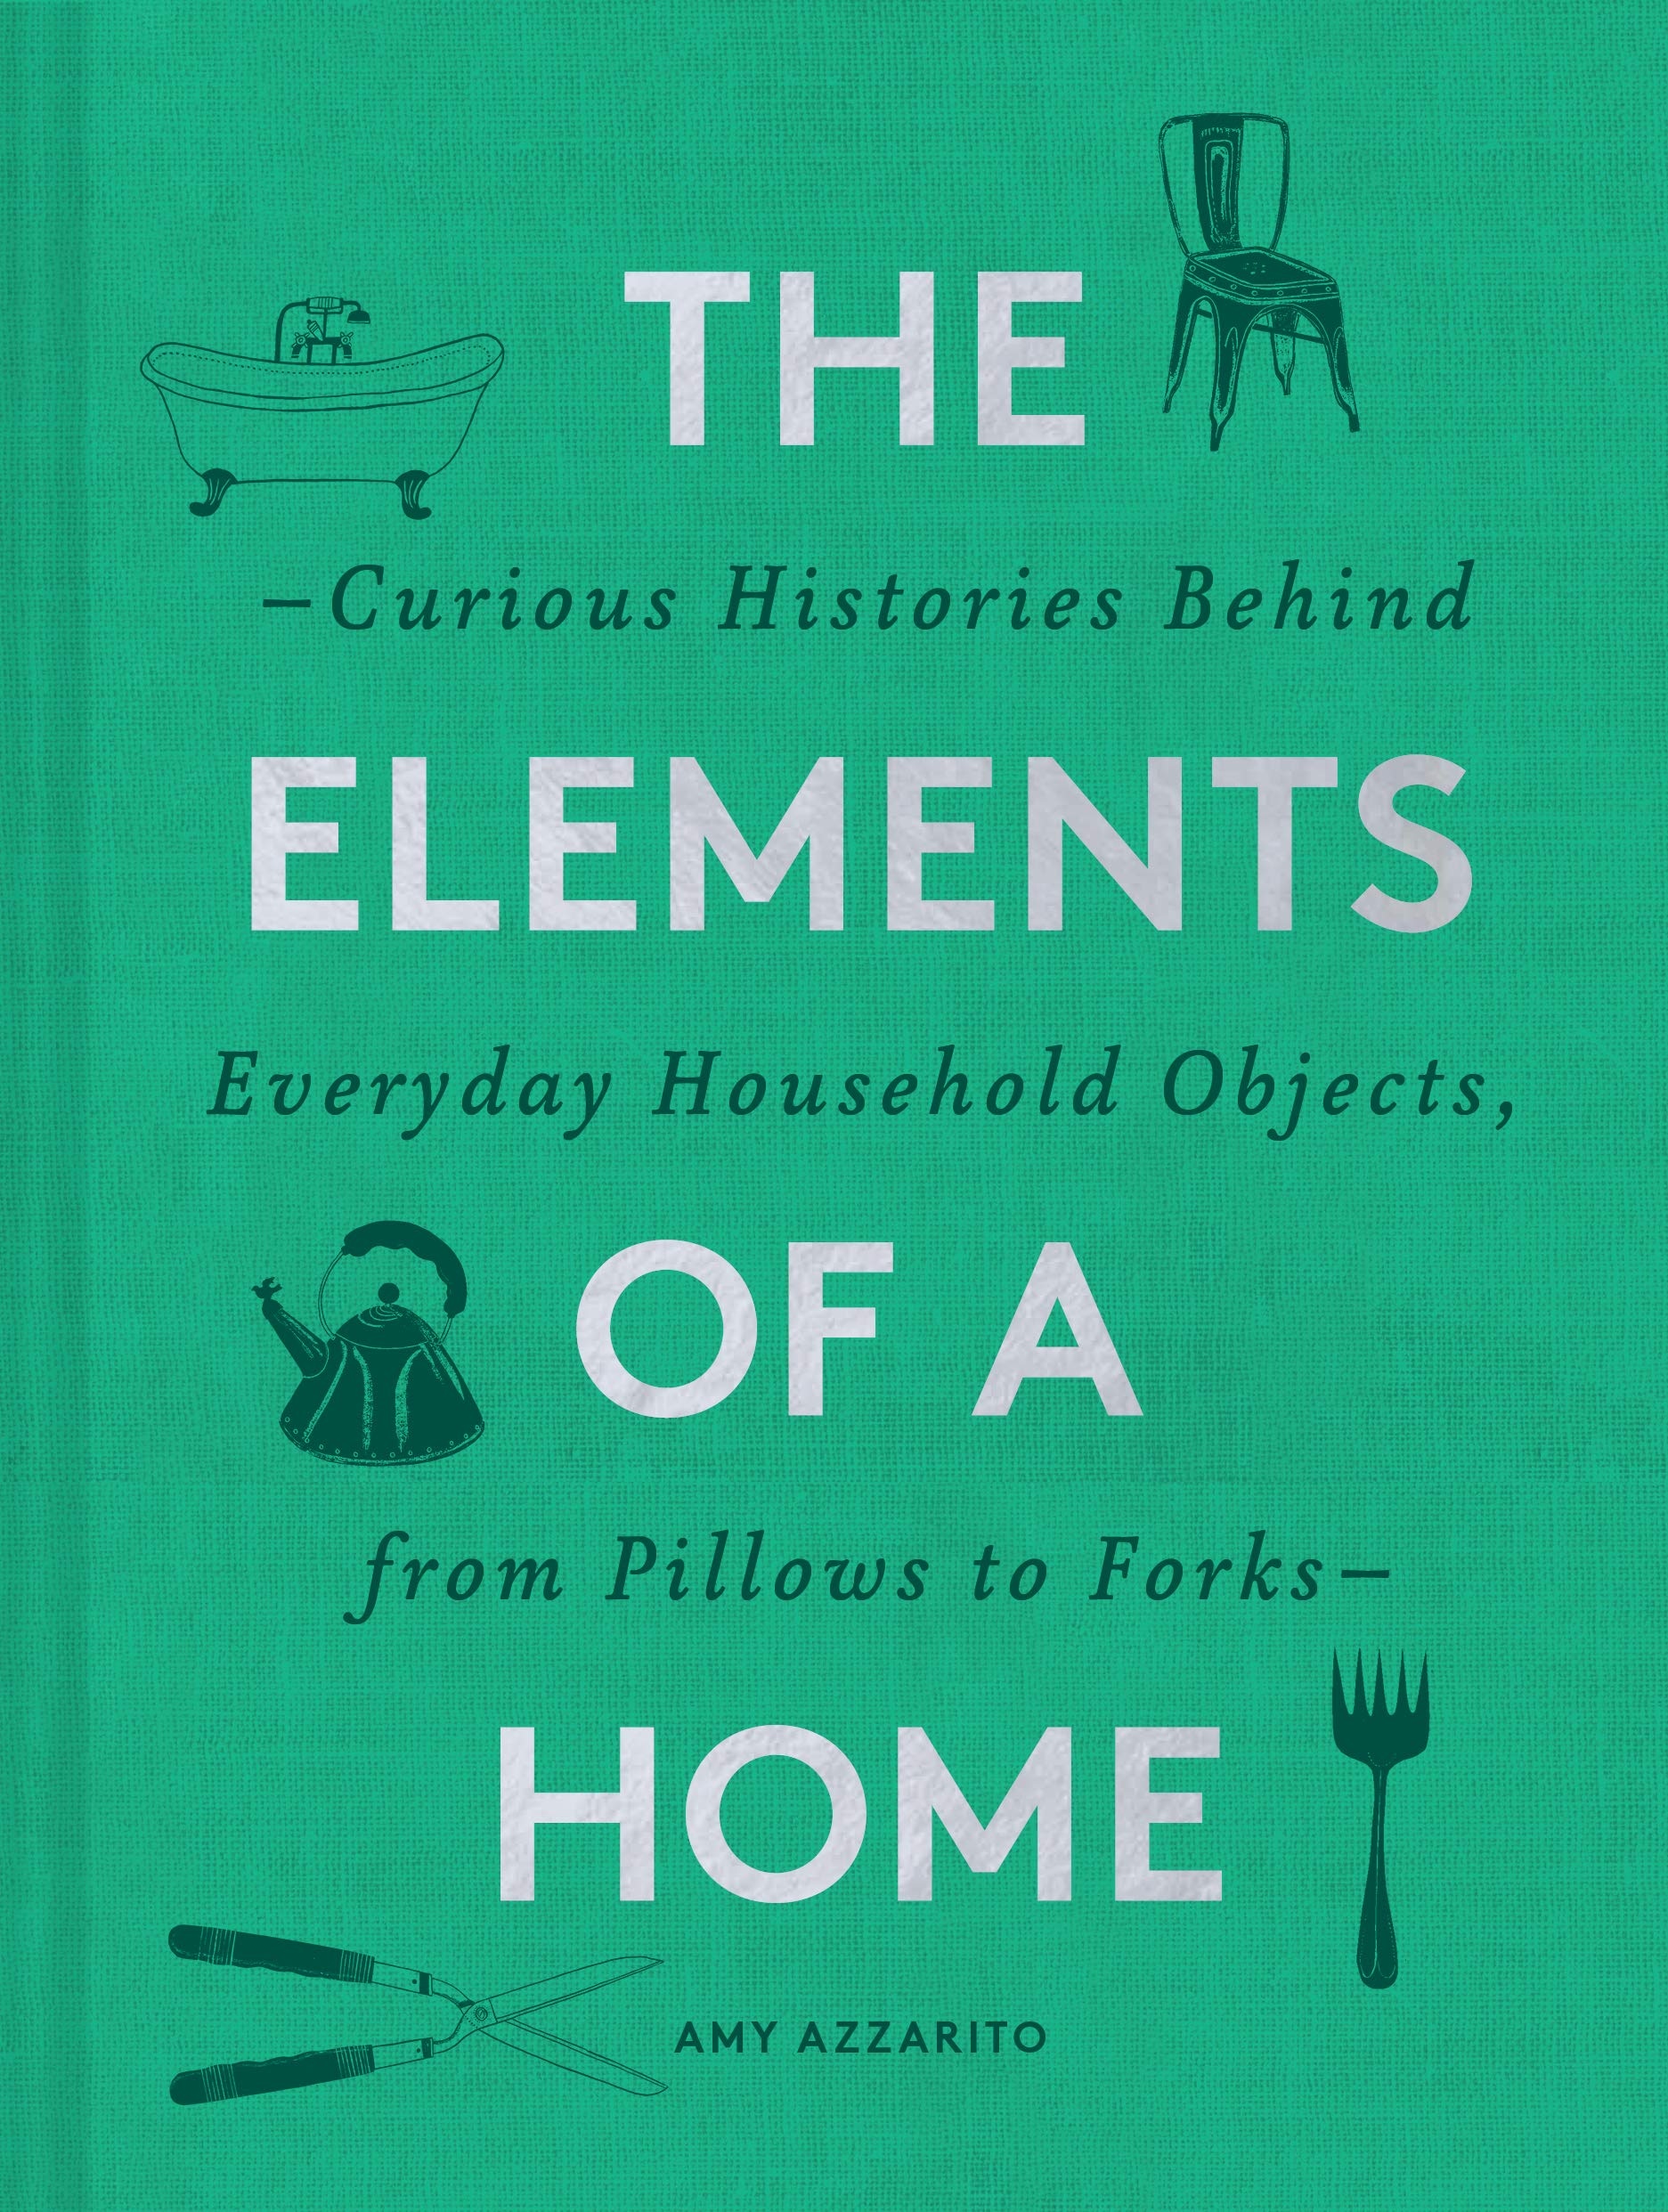 The Elements of Home is available for preorder! -